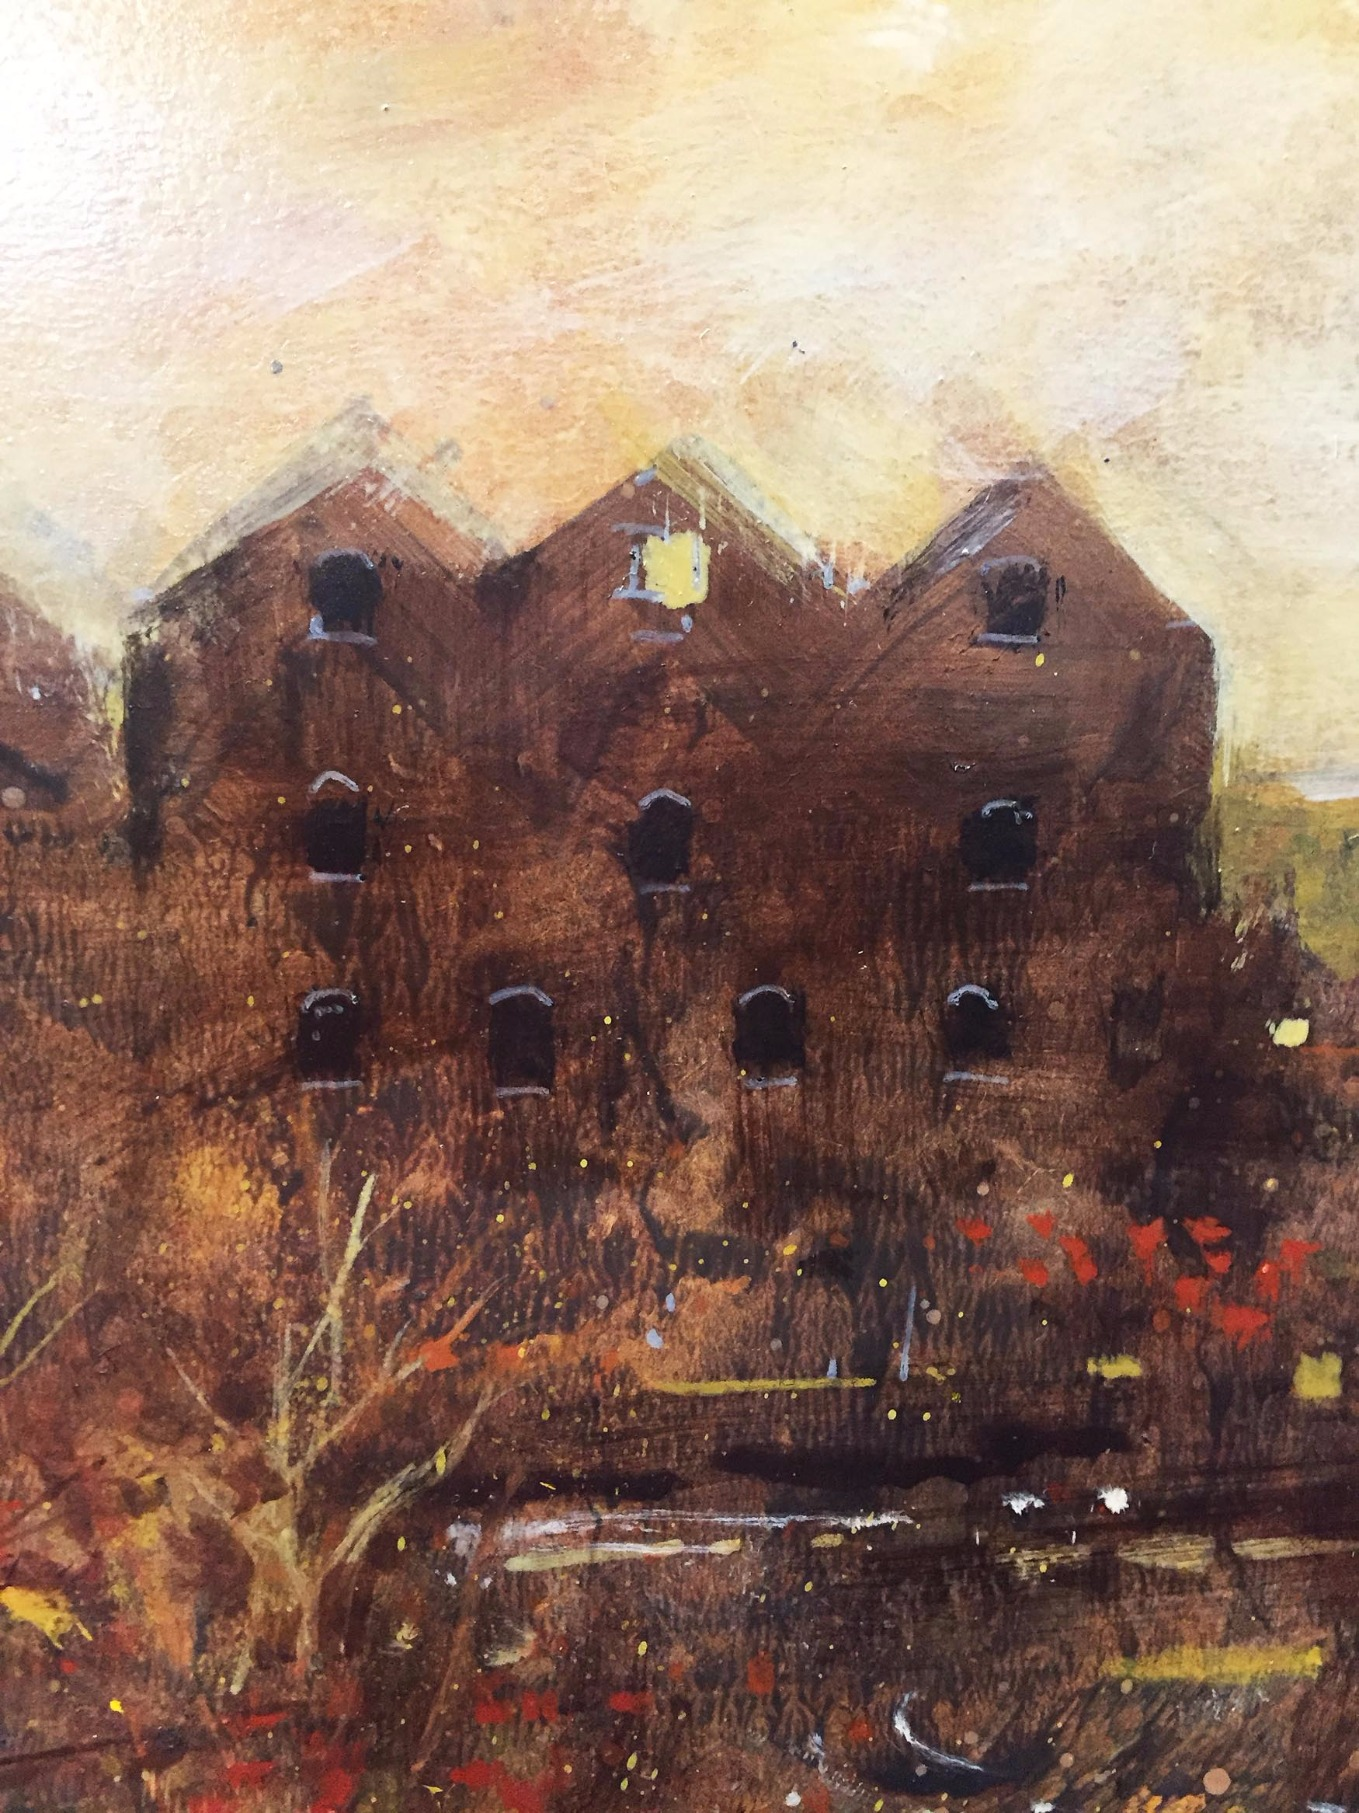 The Fall by David Bez, Northern | Nostalgic | Flowers | Industrial | Landscape